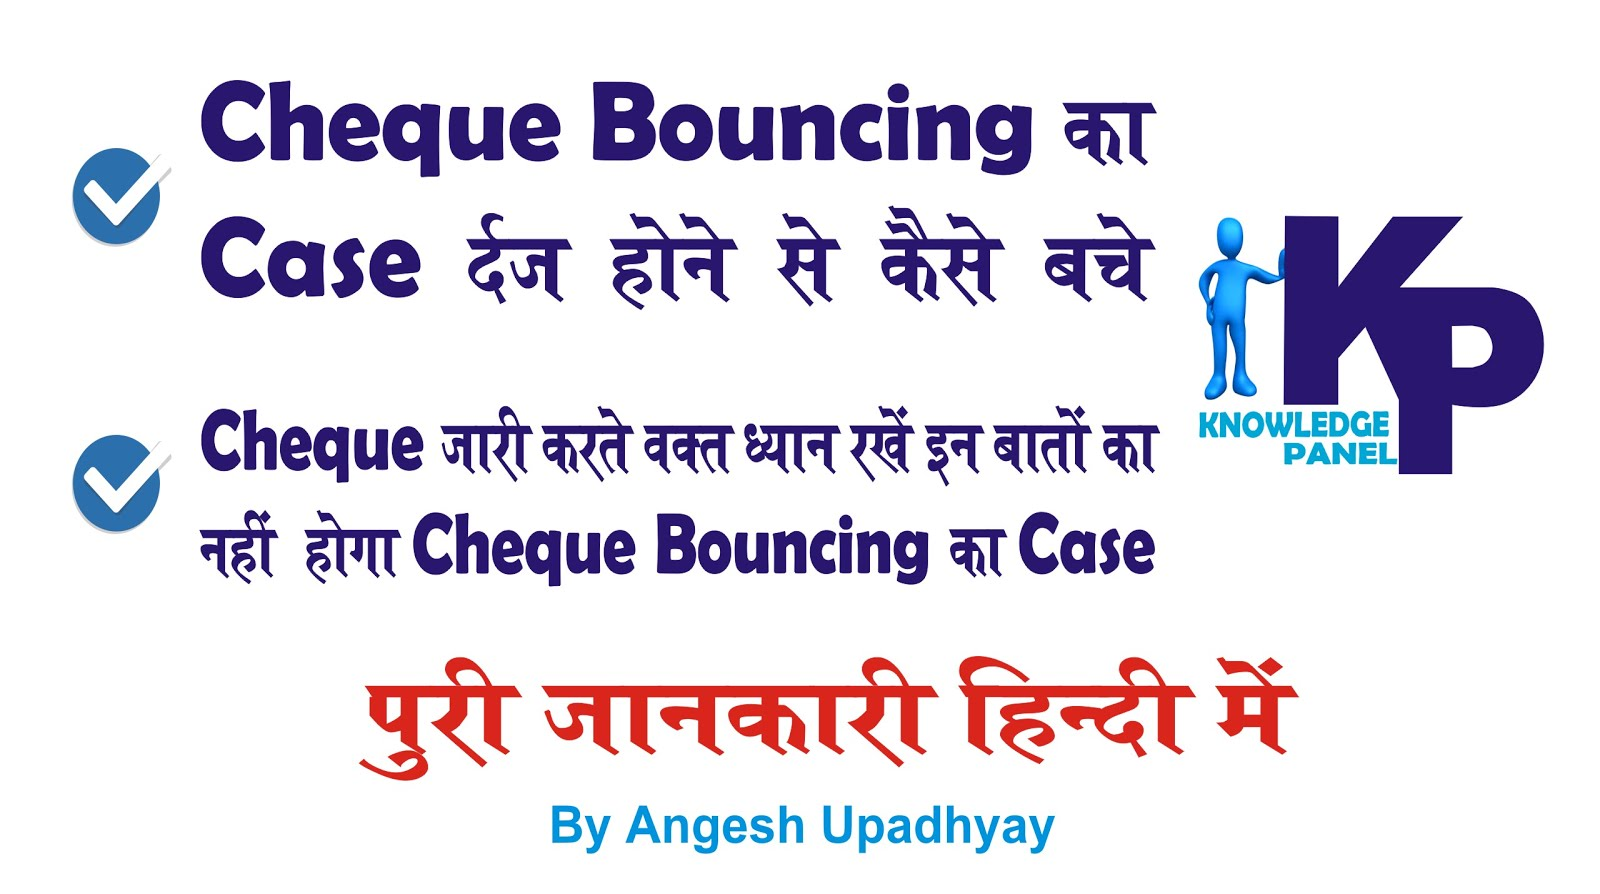 How to protect myself from cheque bounce